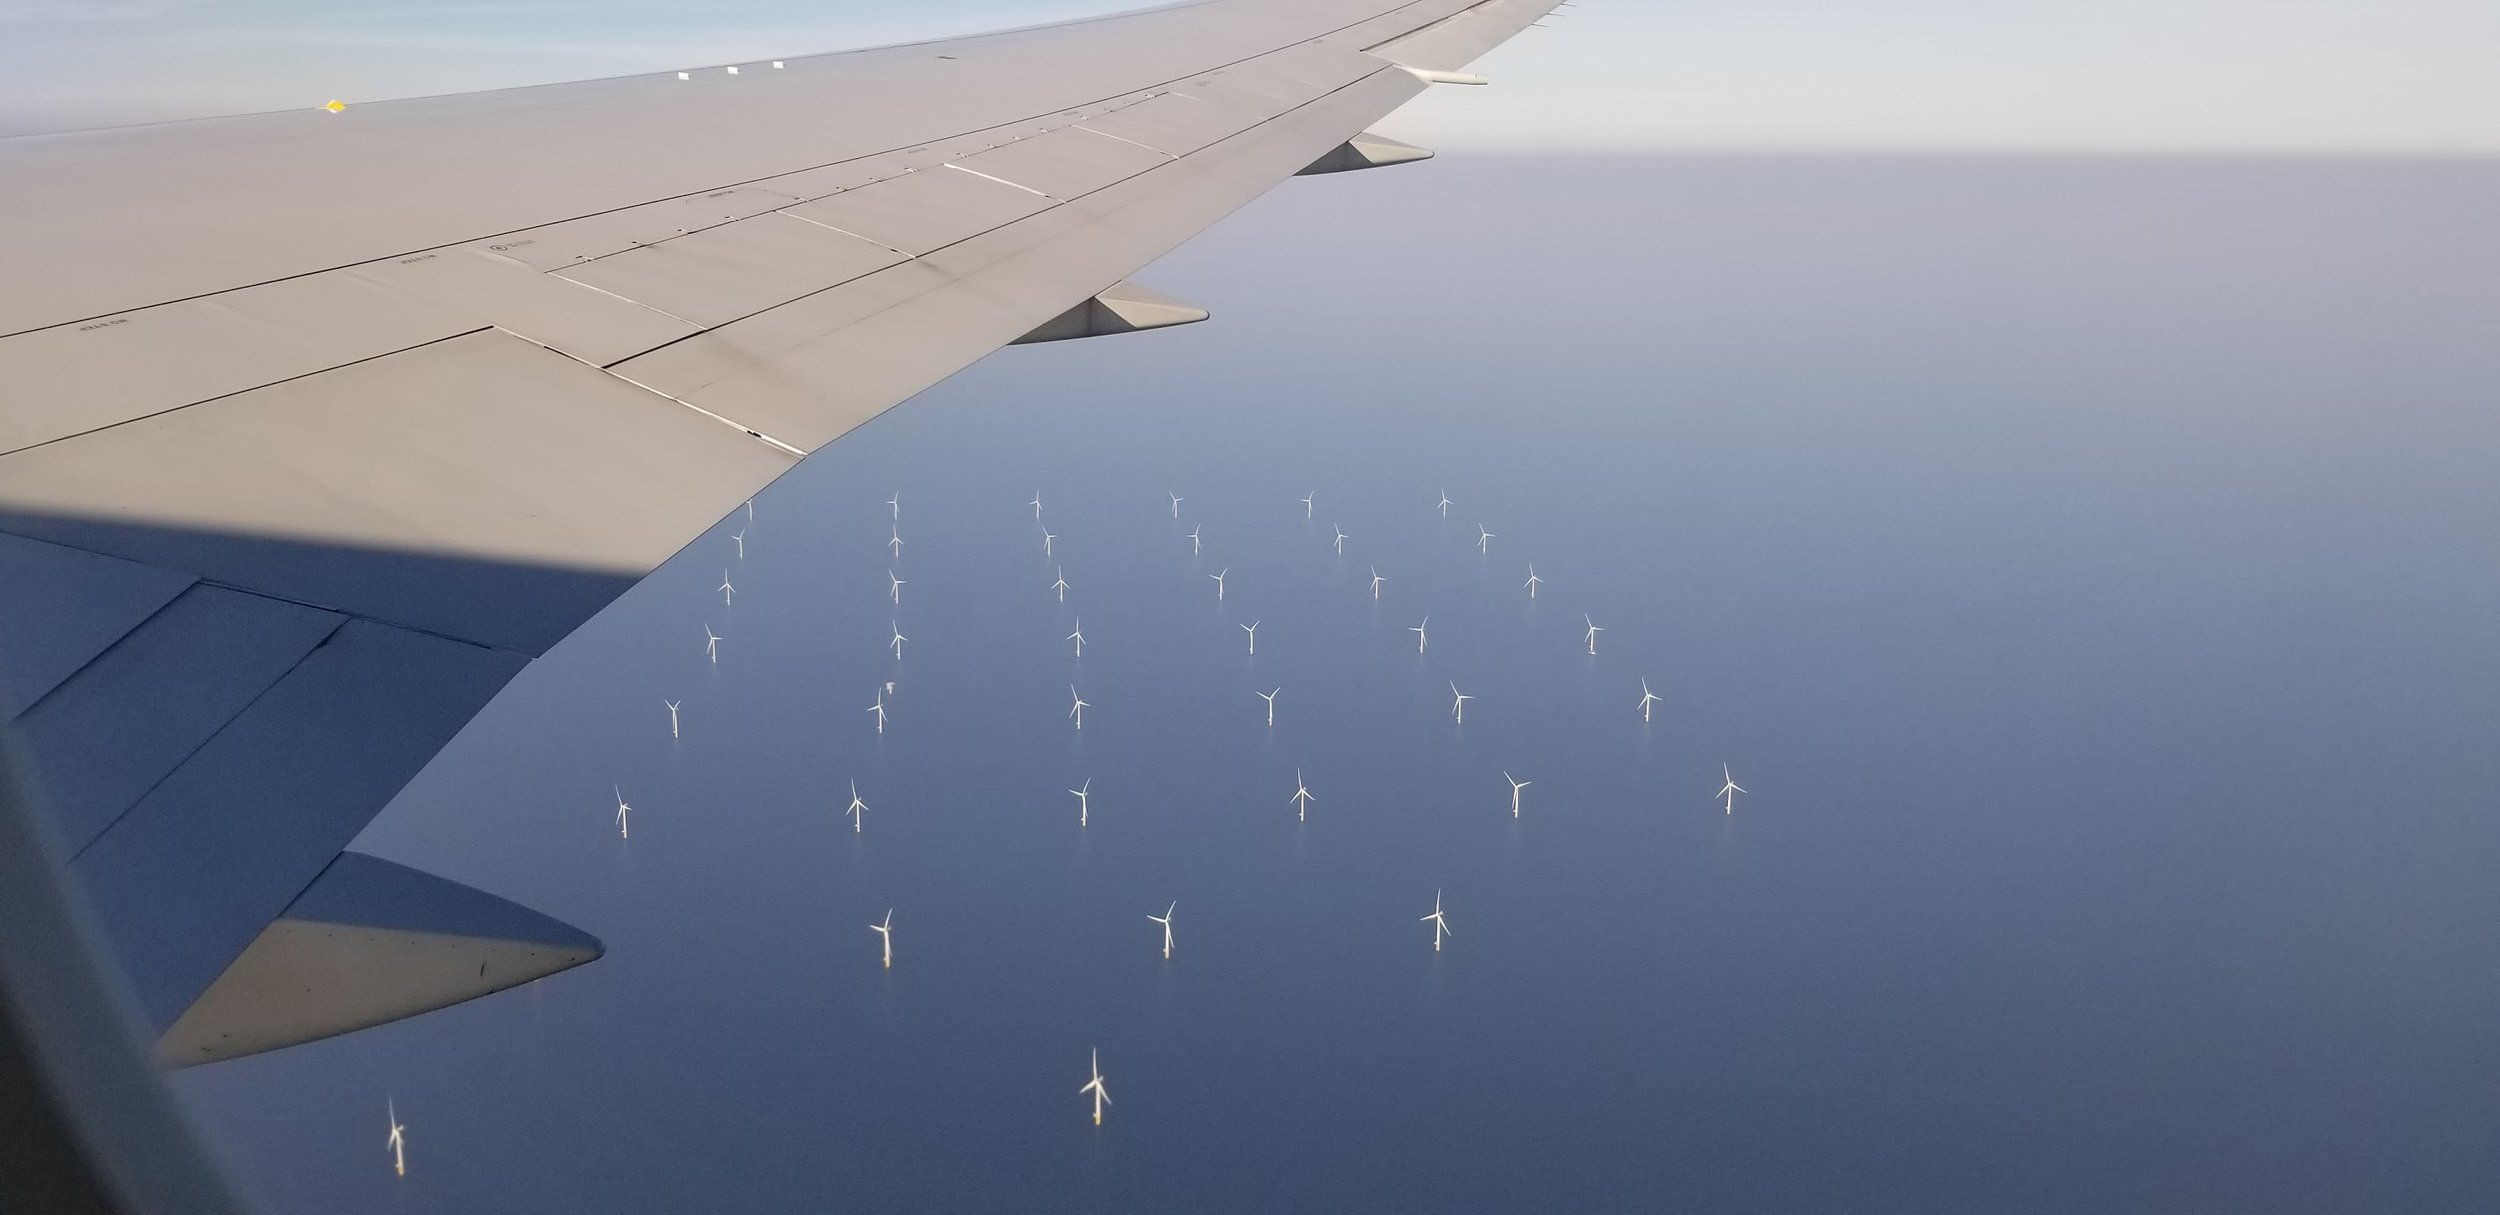 Windmills off the coast of Netherlands.